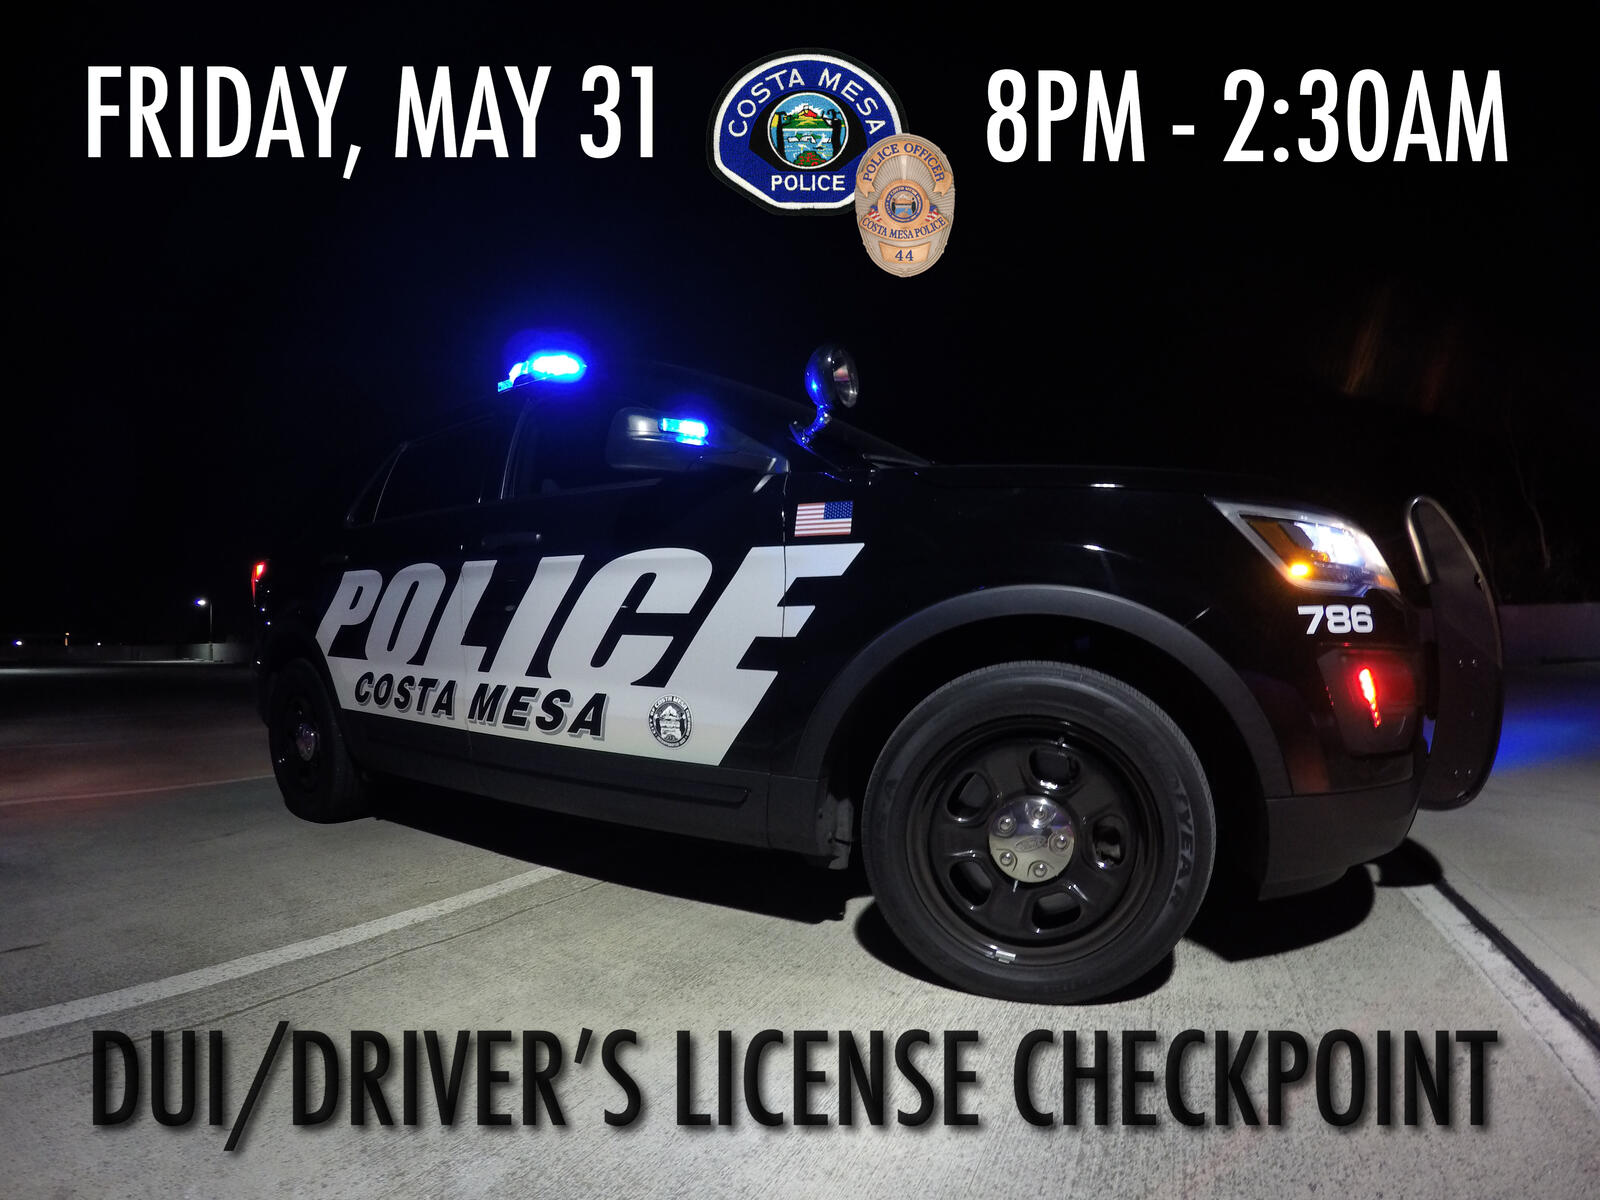 We will be conducting a DUI/Driver's License Checkpoint on